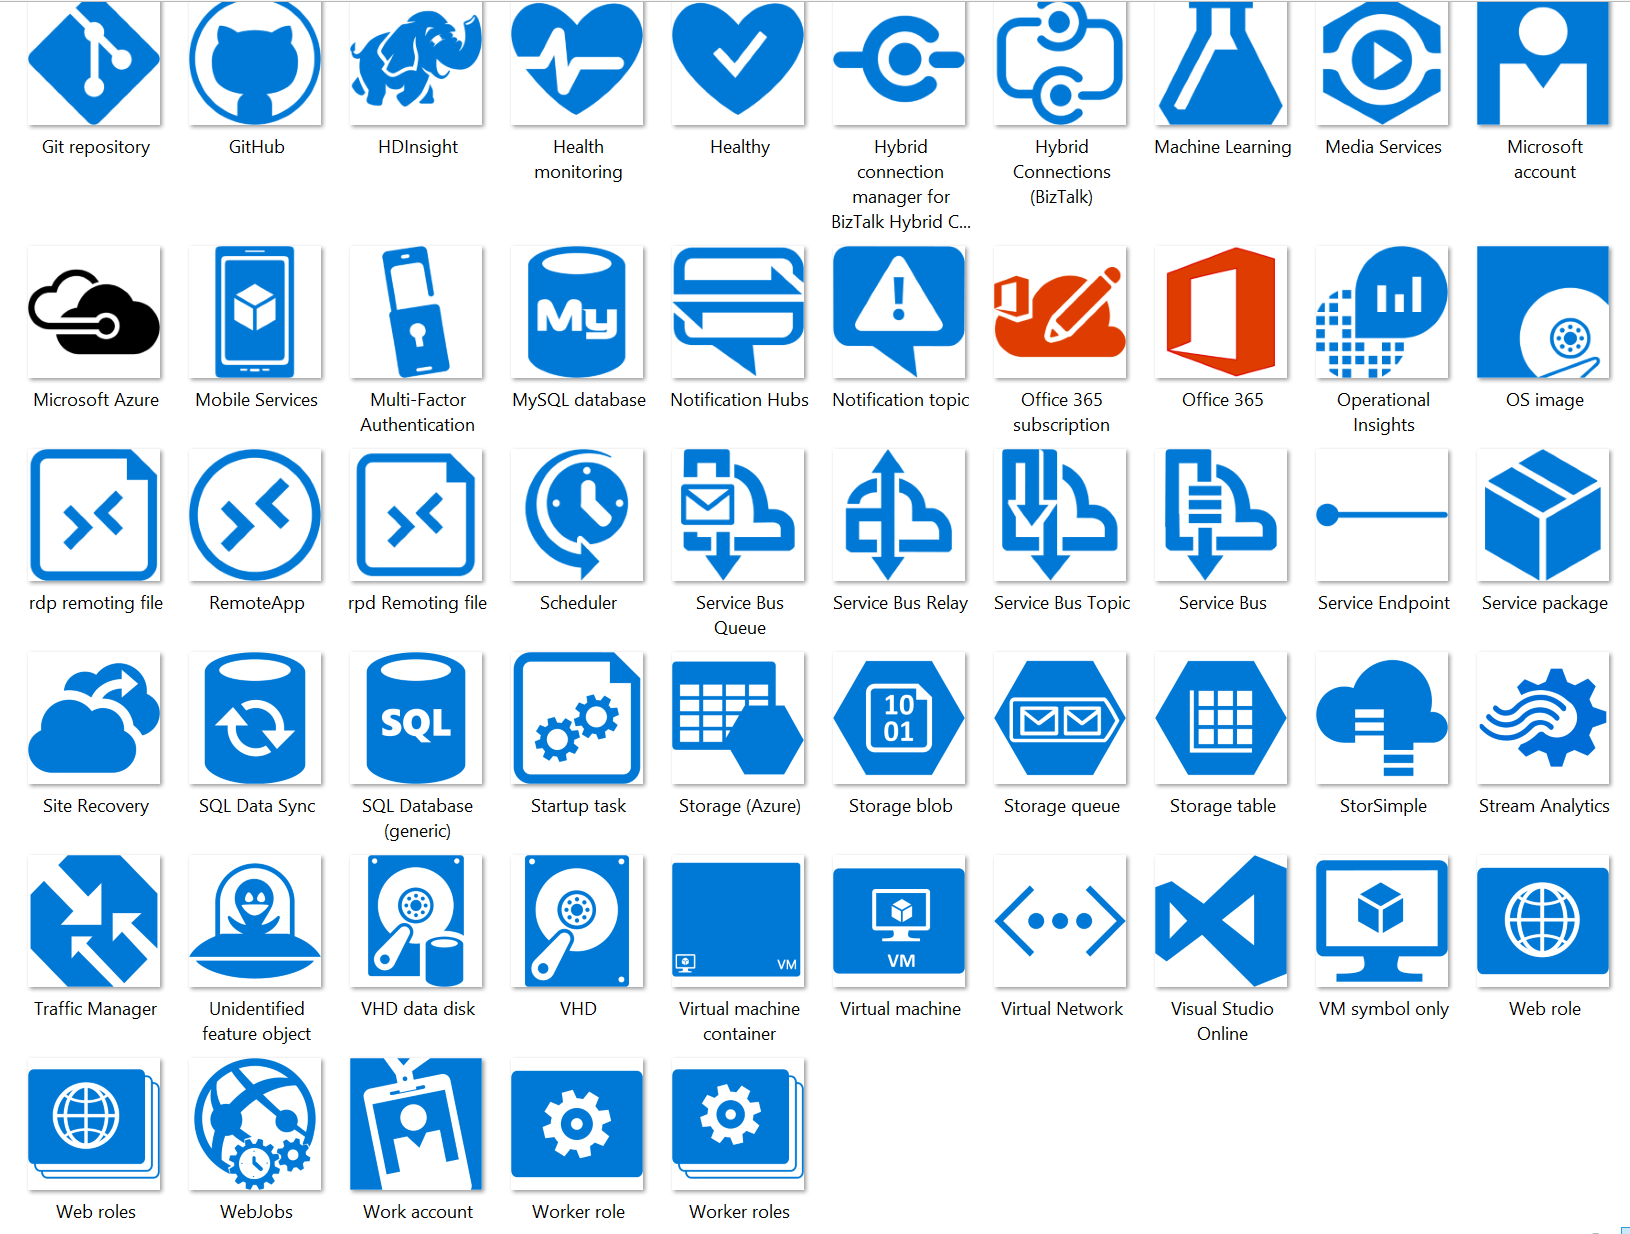 GitHub - mskutin/MicrosoftCloudnEnterpriseSymbols: A set of symbols/icons  to visually represent features of and systems that use Microsoft Azure and  related technologiesGitHub